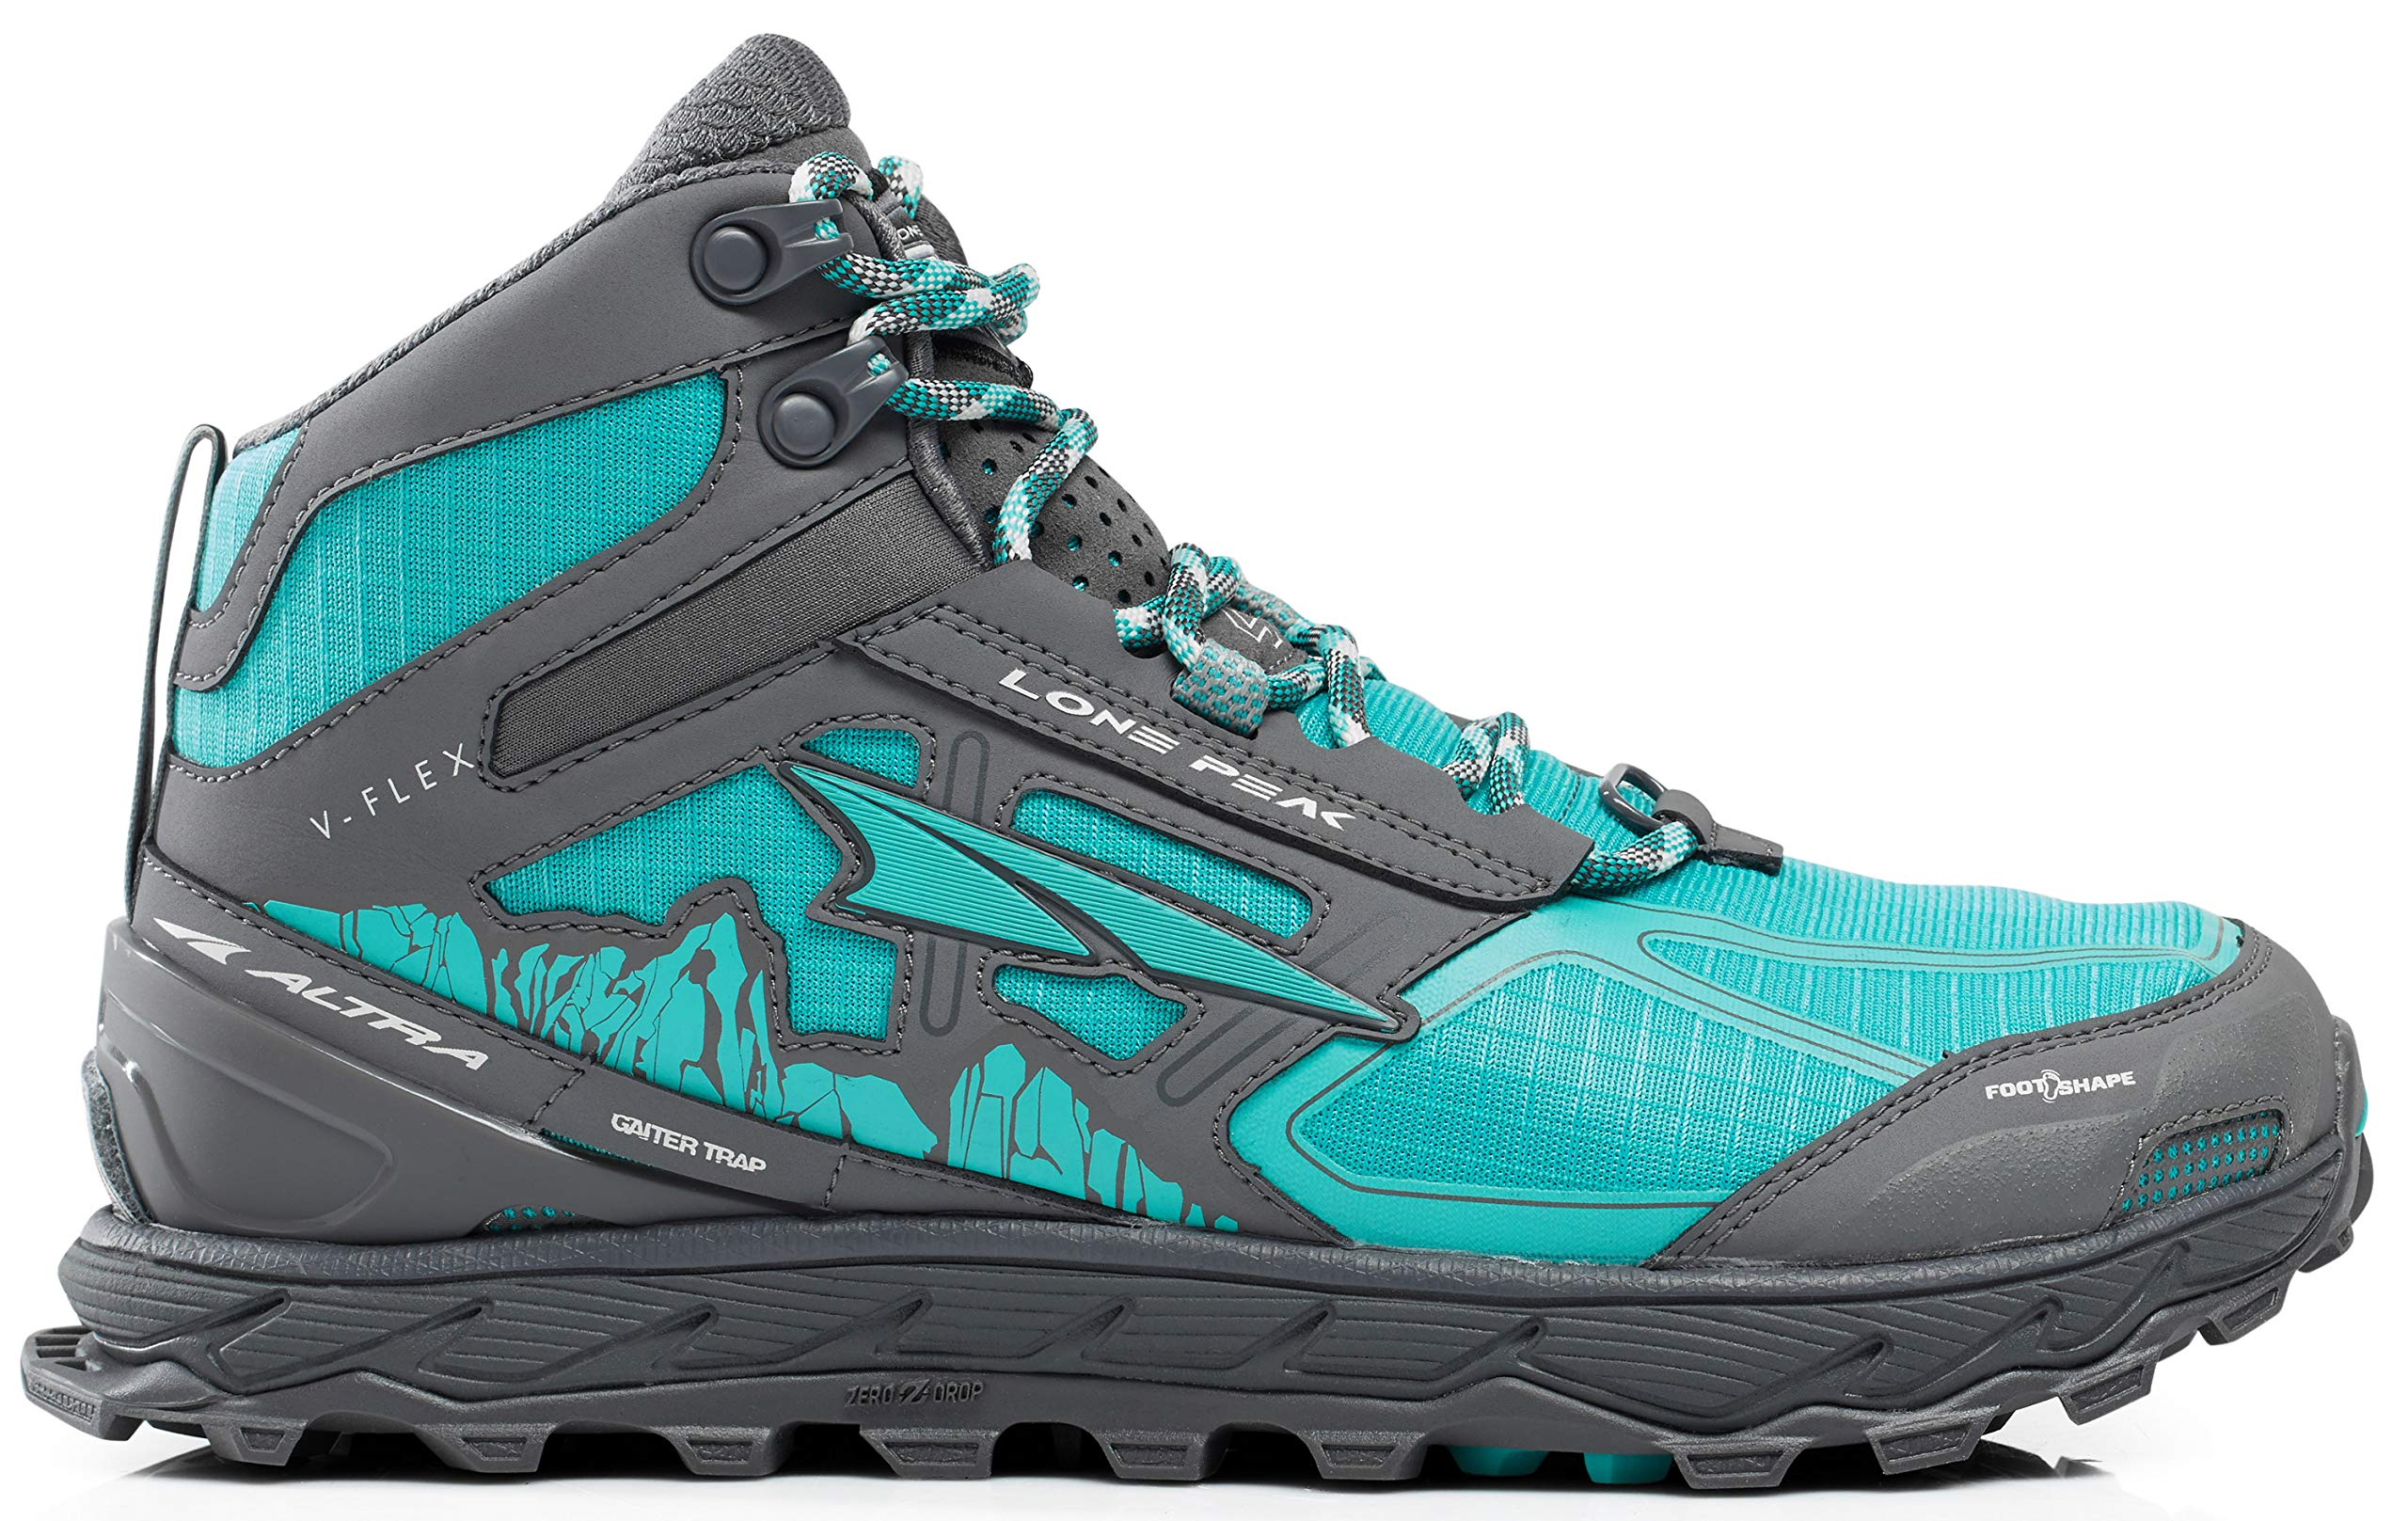 Altra Women's Lone Peak 4 Mid Mesh Trail Running Shoe, Teal/Gray - 7.5 B(M) US by Altra (Image #1)